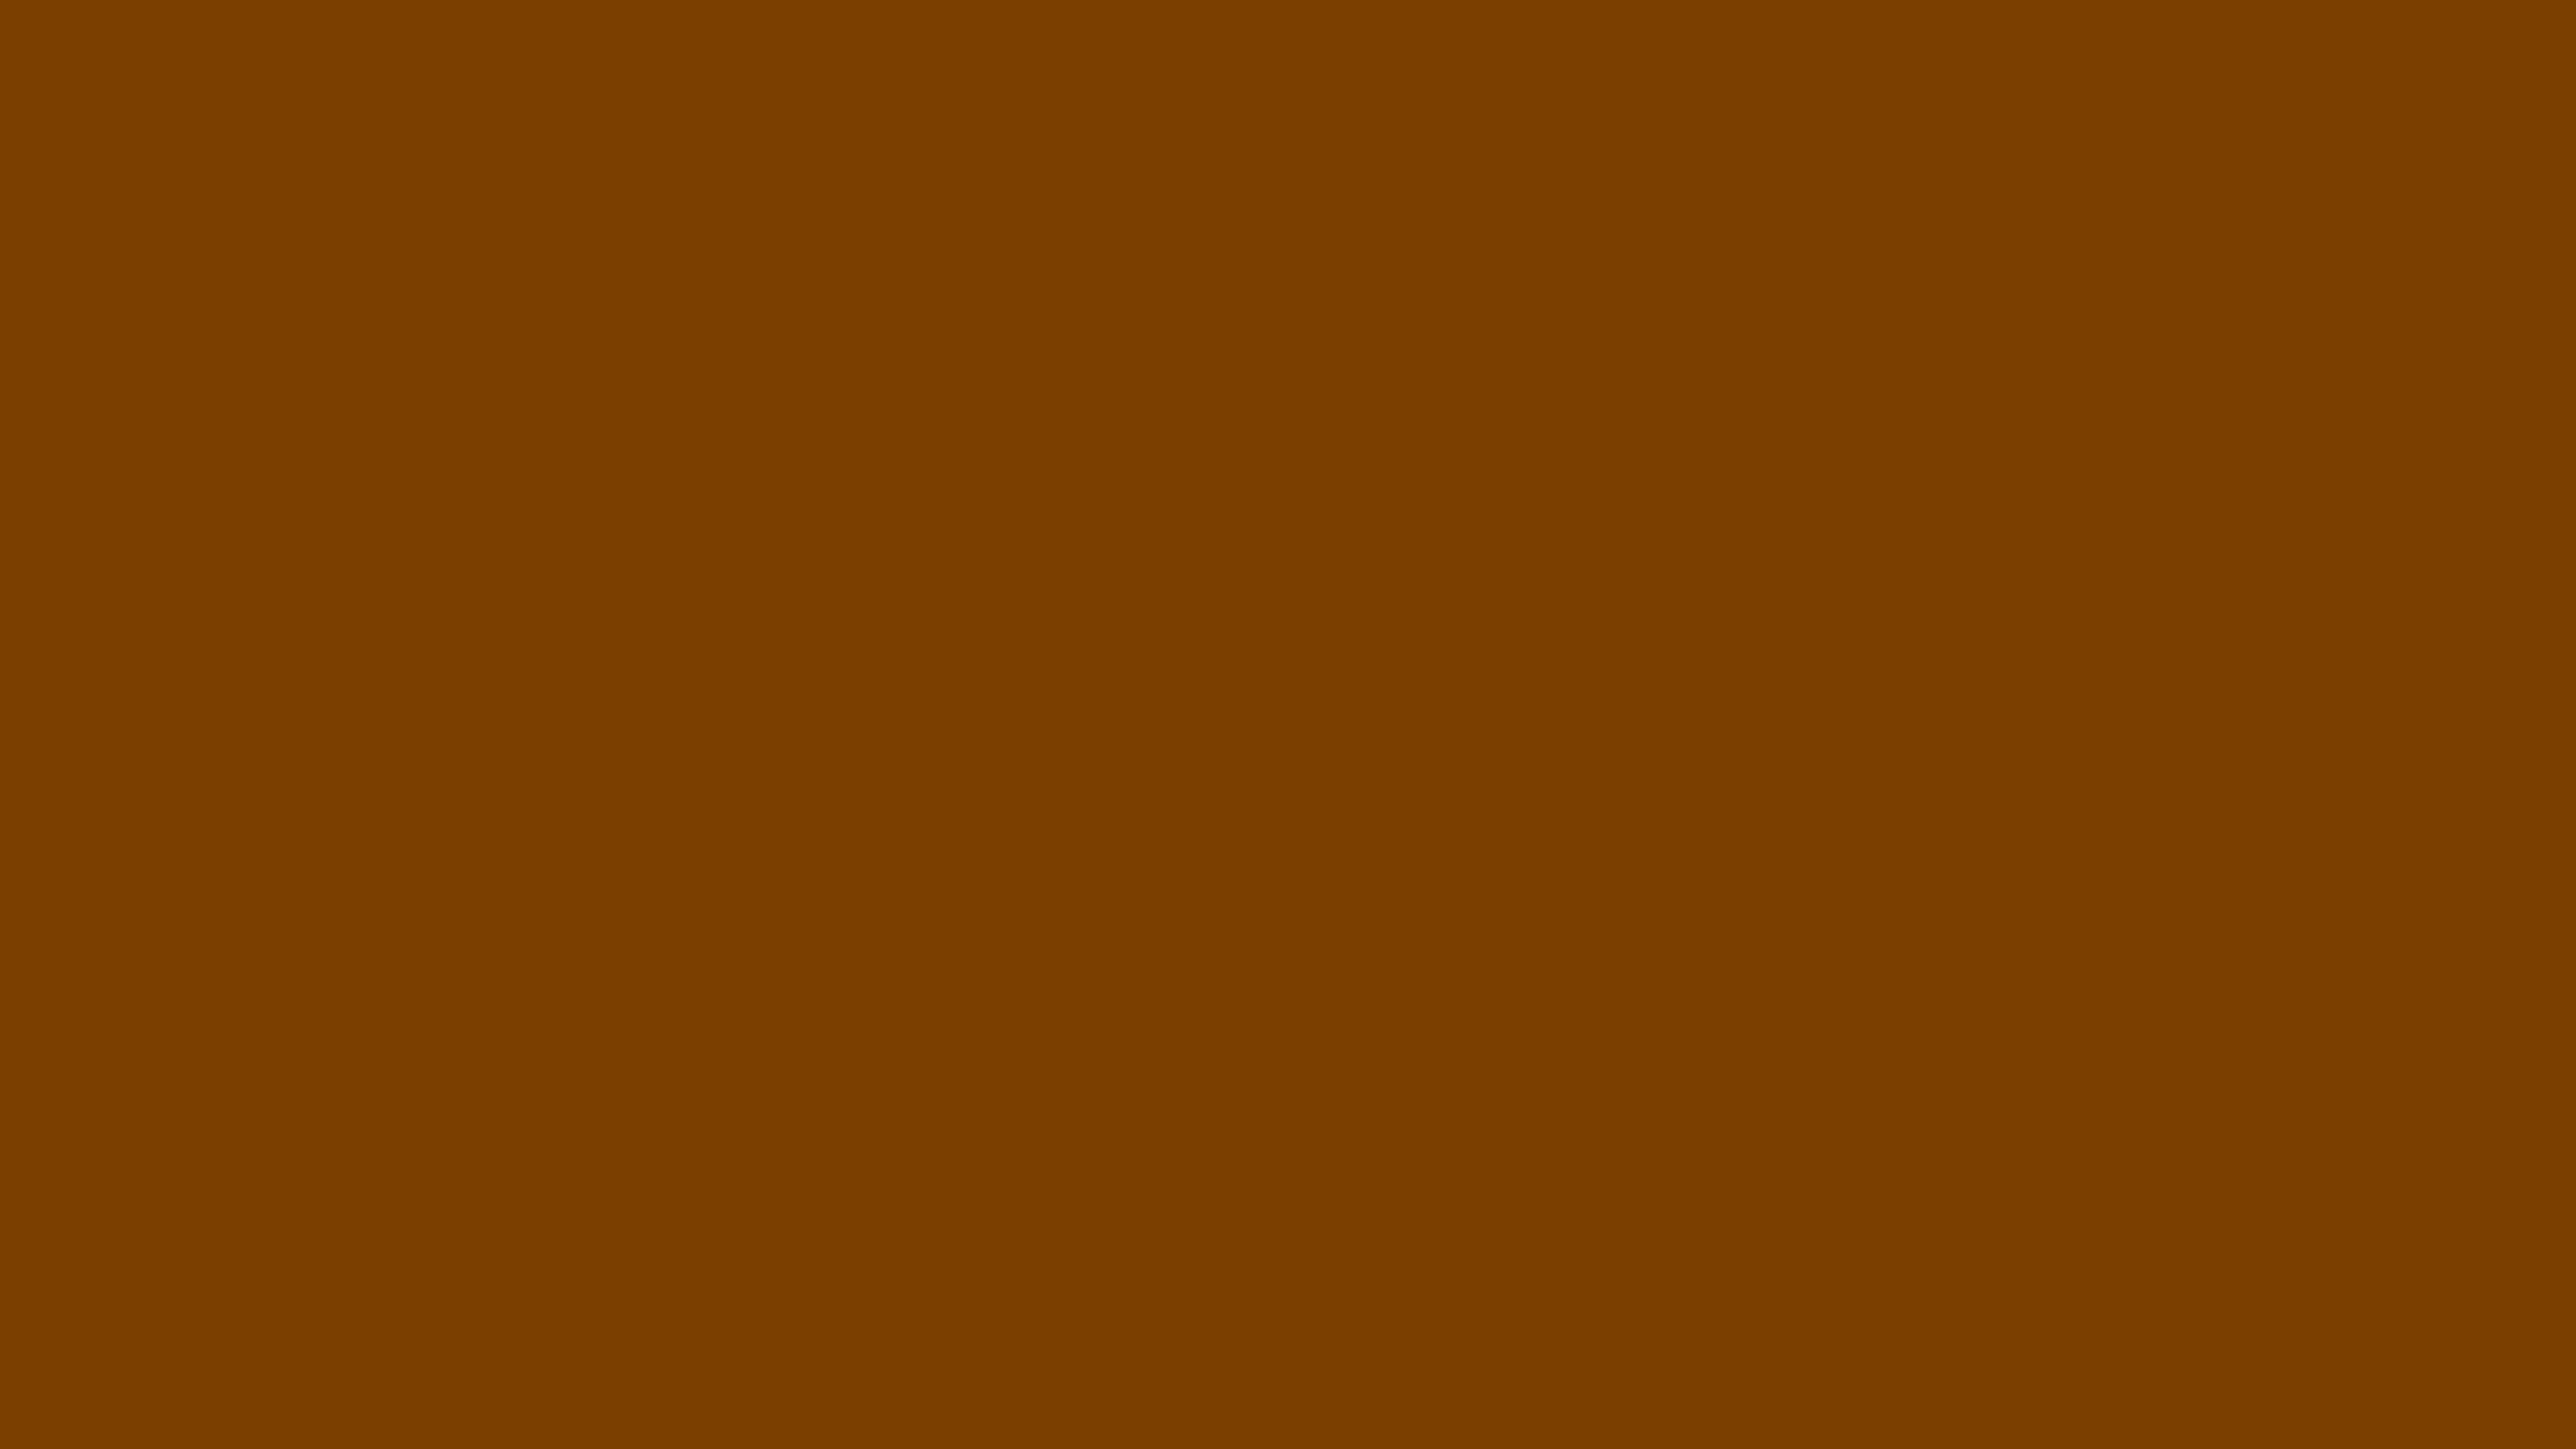 3840x2160 Chocolate Traditional Solid Color Background